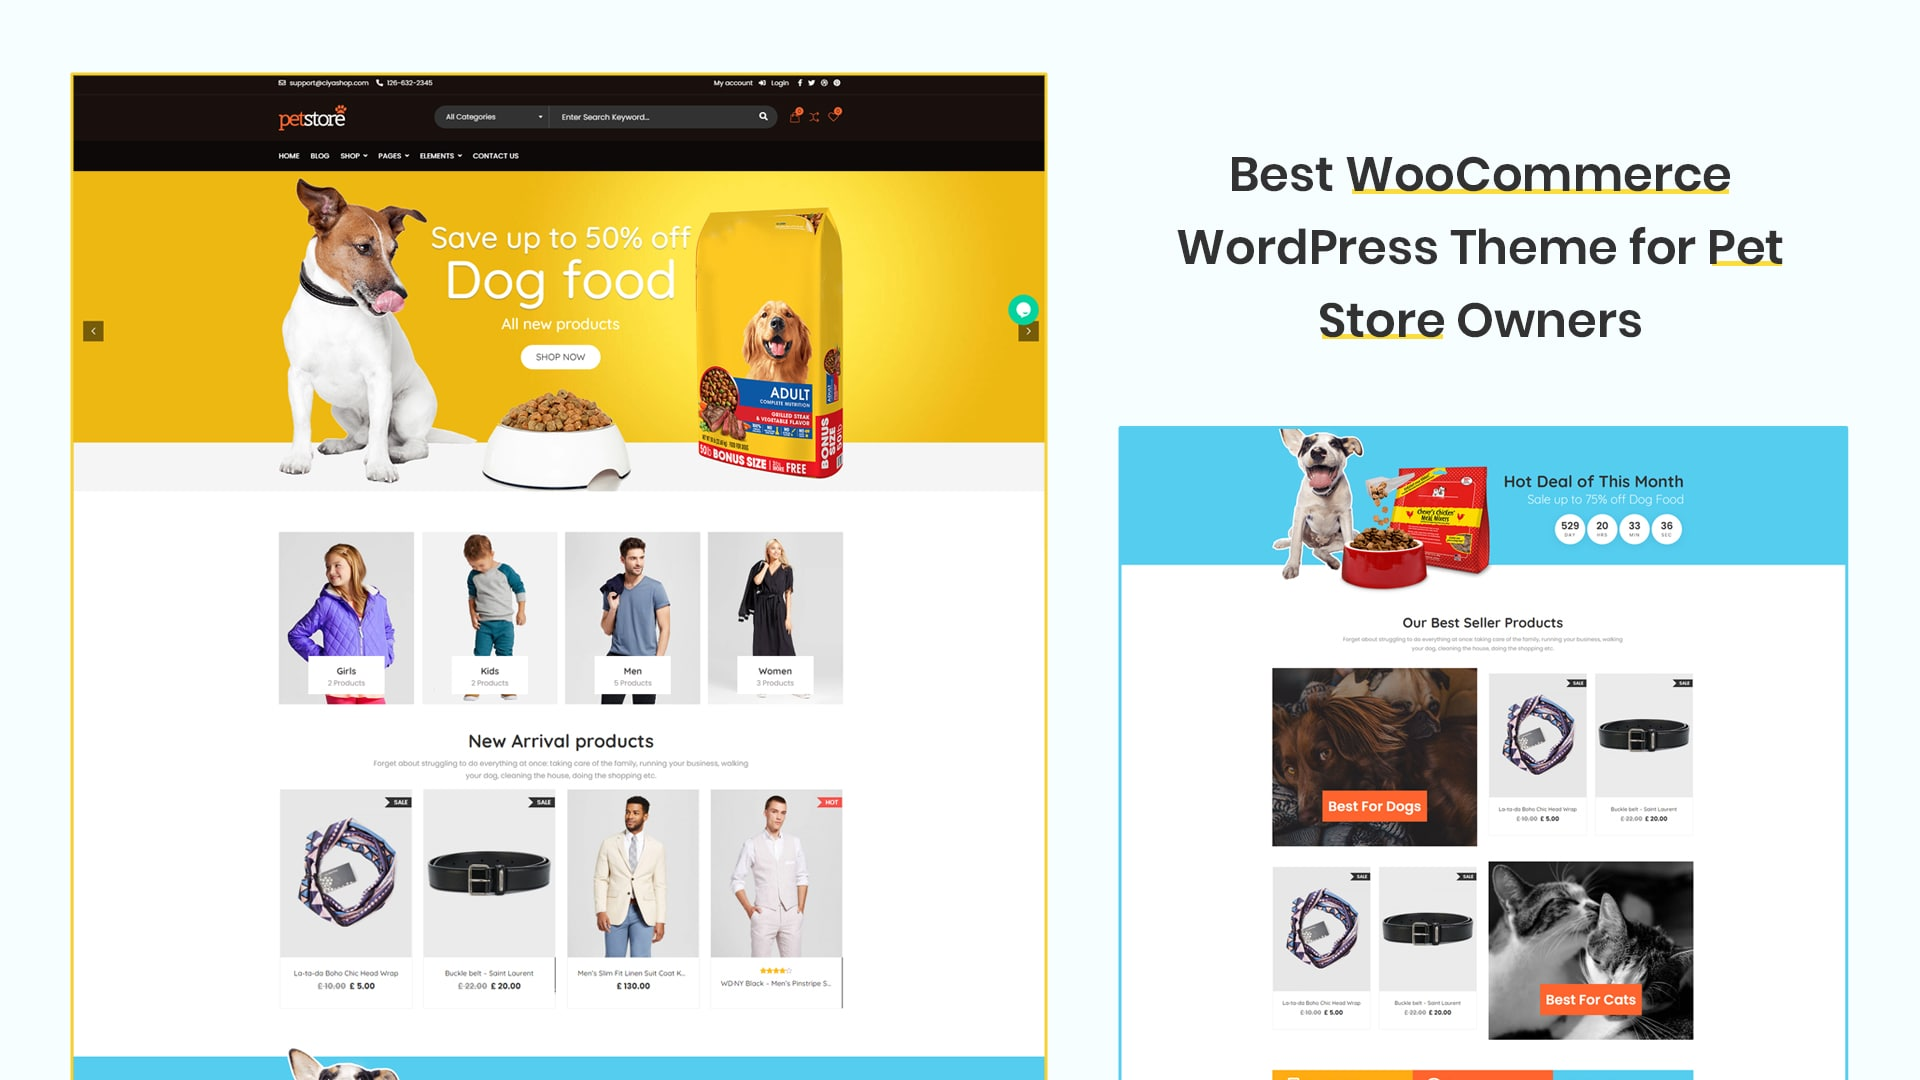 Best WooCommerce WordPress Theme for Pet Store Owners